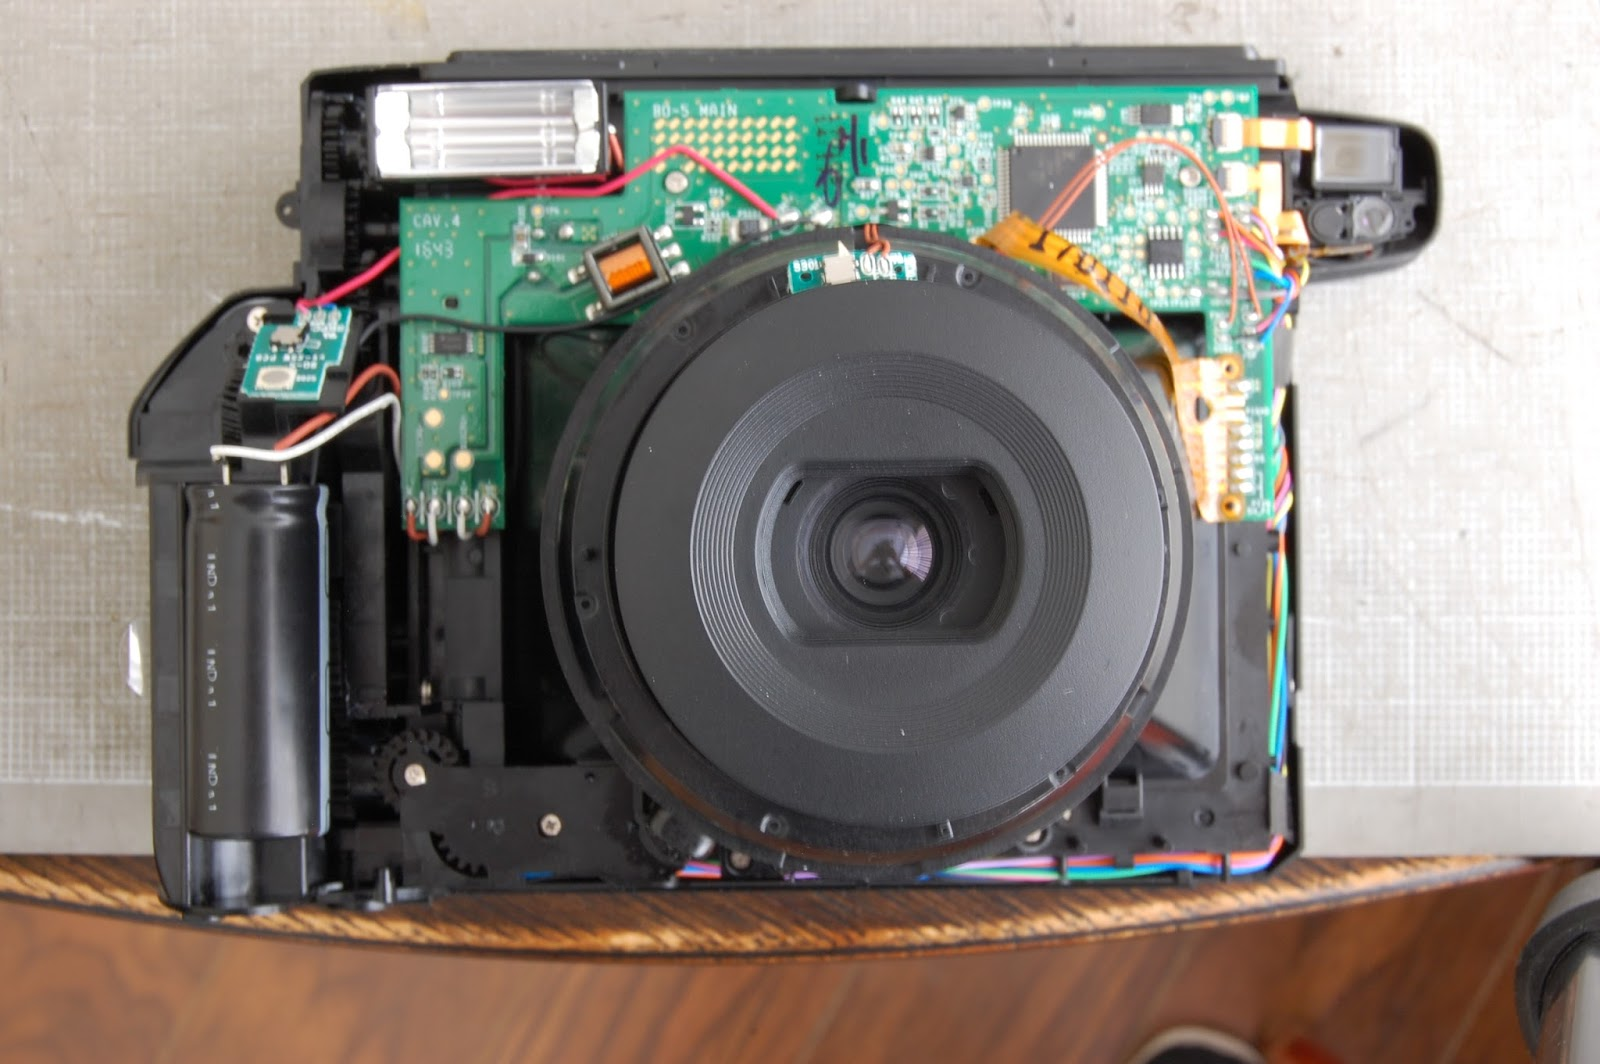 The Shutter Goes Click With Jj Lee Instax Wide 300 Teardown For Hacks And Mods Diy Led Camera One Of My Big Priorities Was To Disable Flash It Disconnected Orange White Wires From Capacitor See Picture Below Why